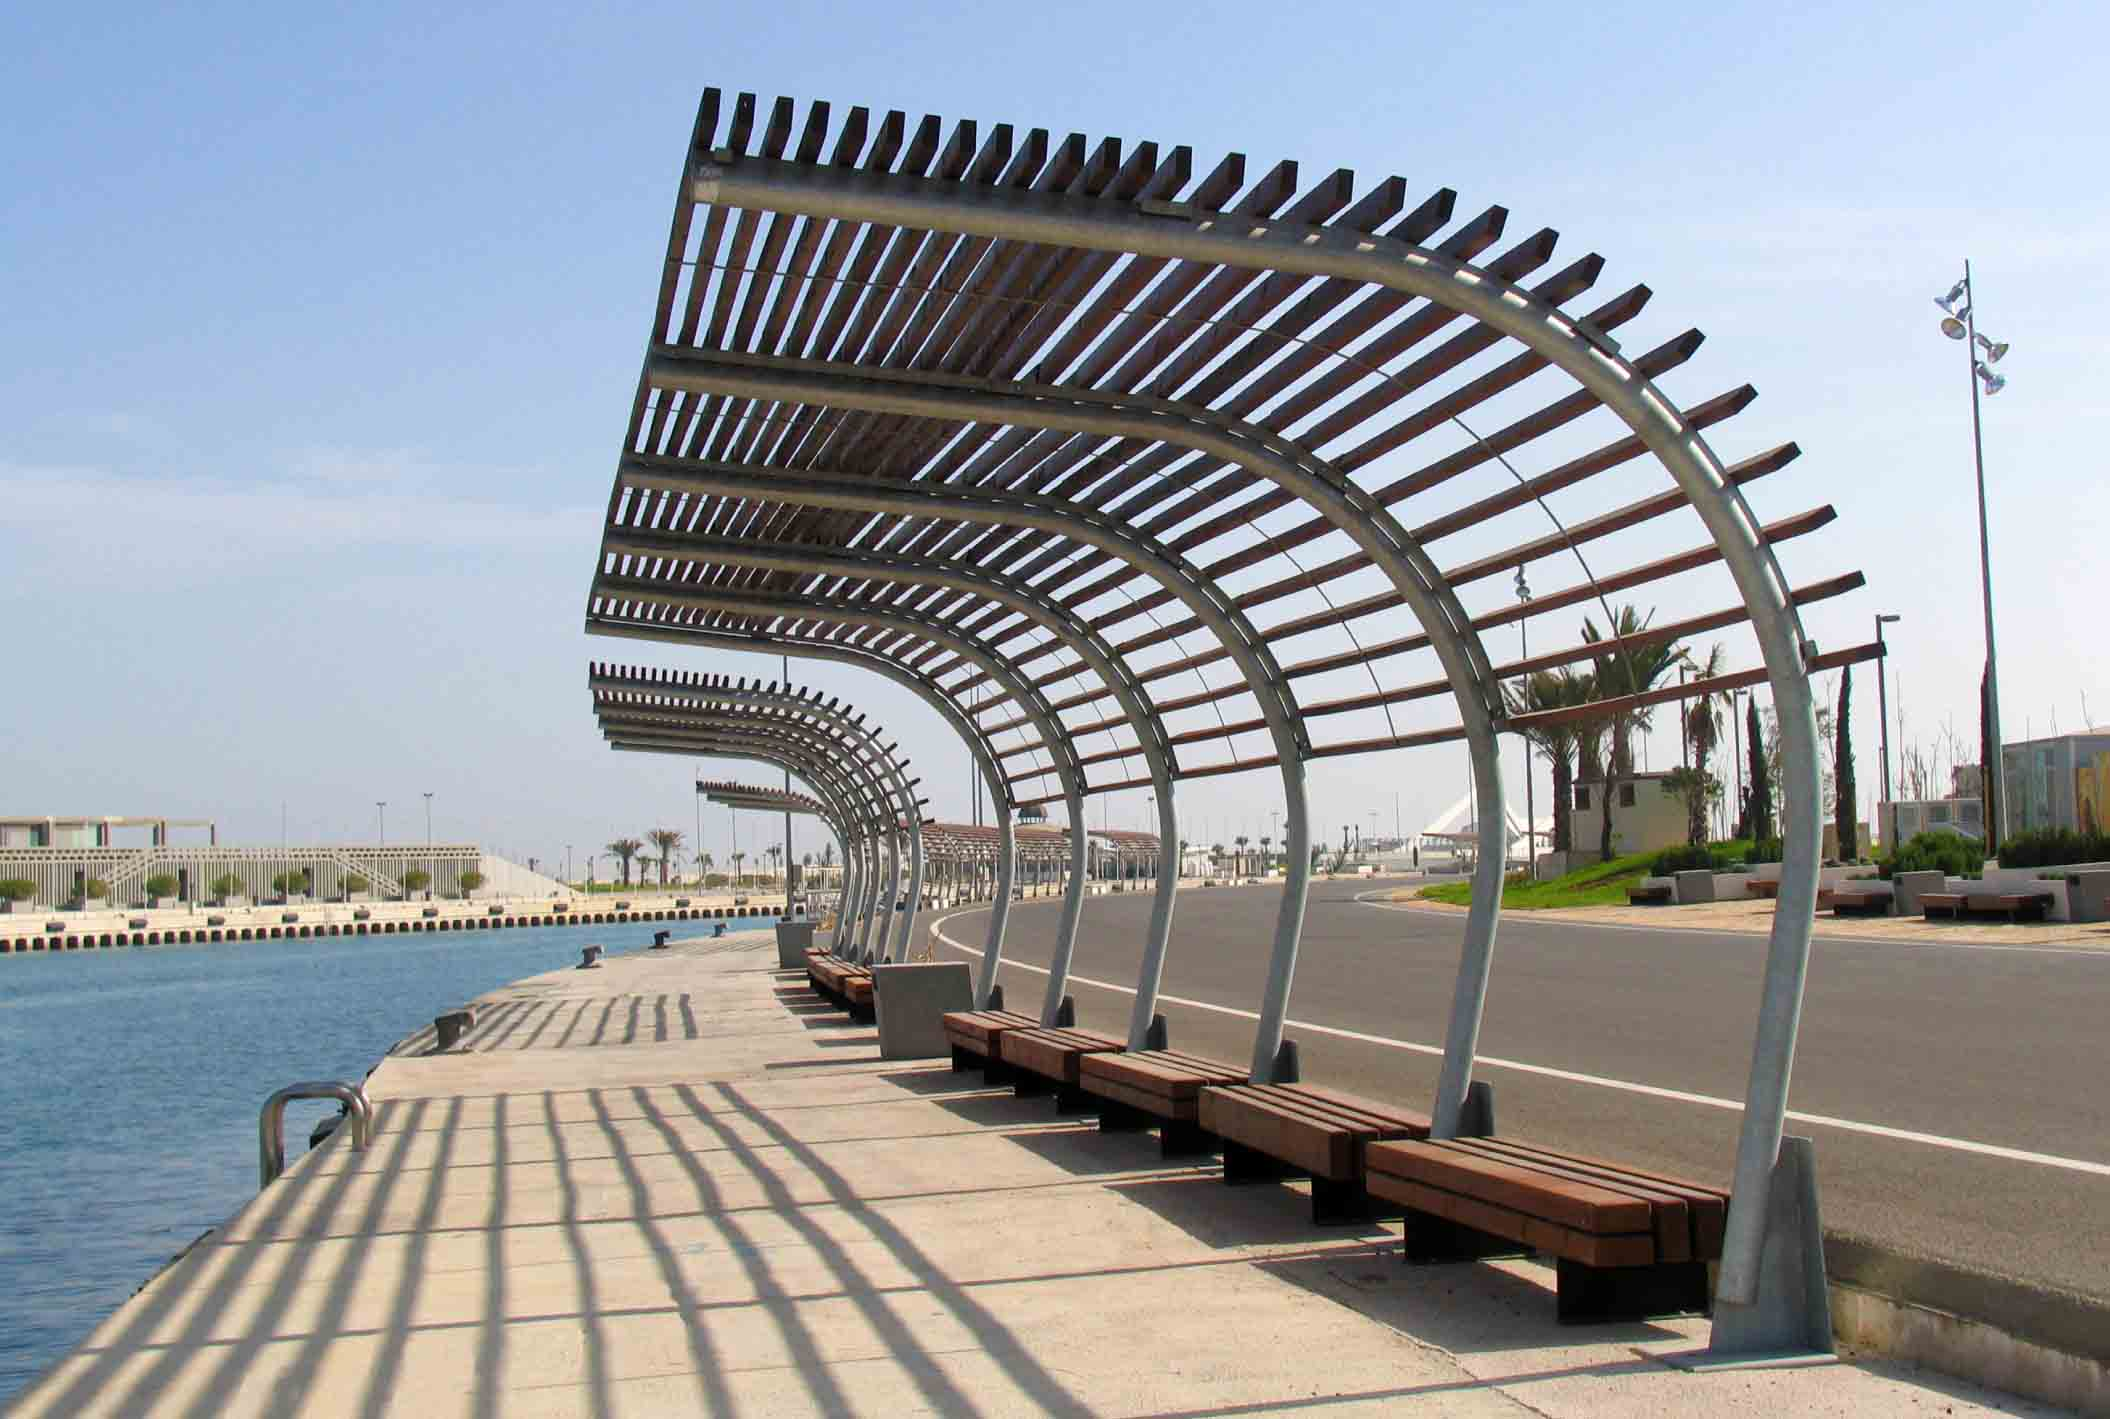 -Pergola of wood and steel closed to the sea